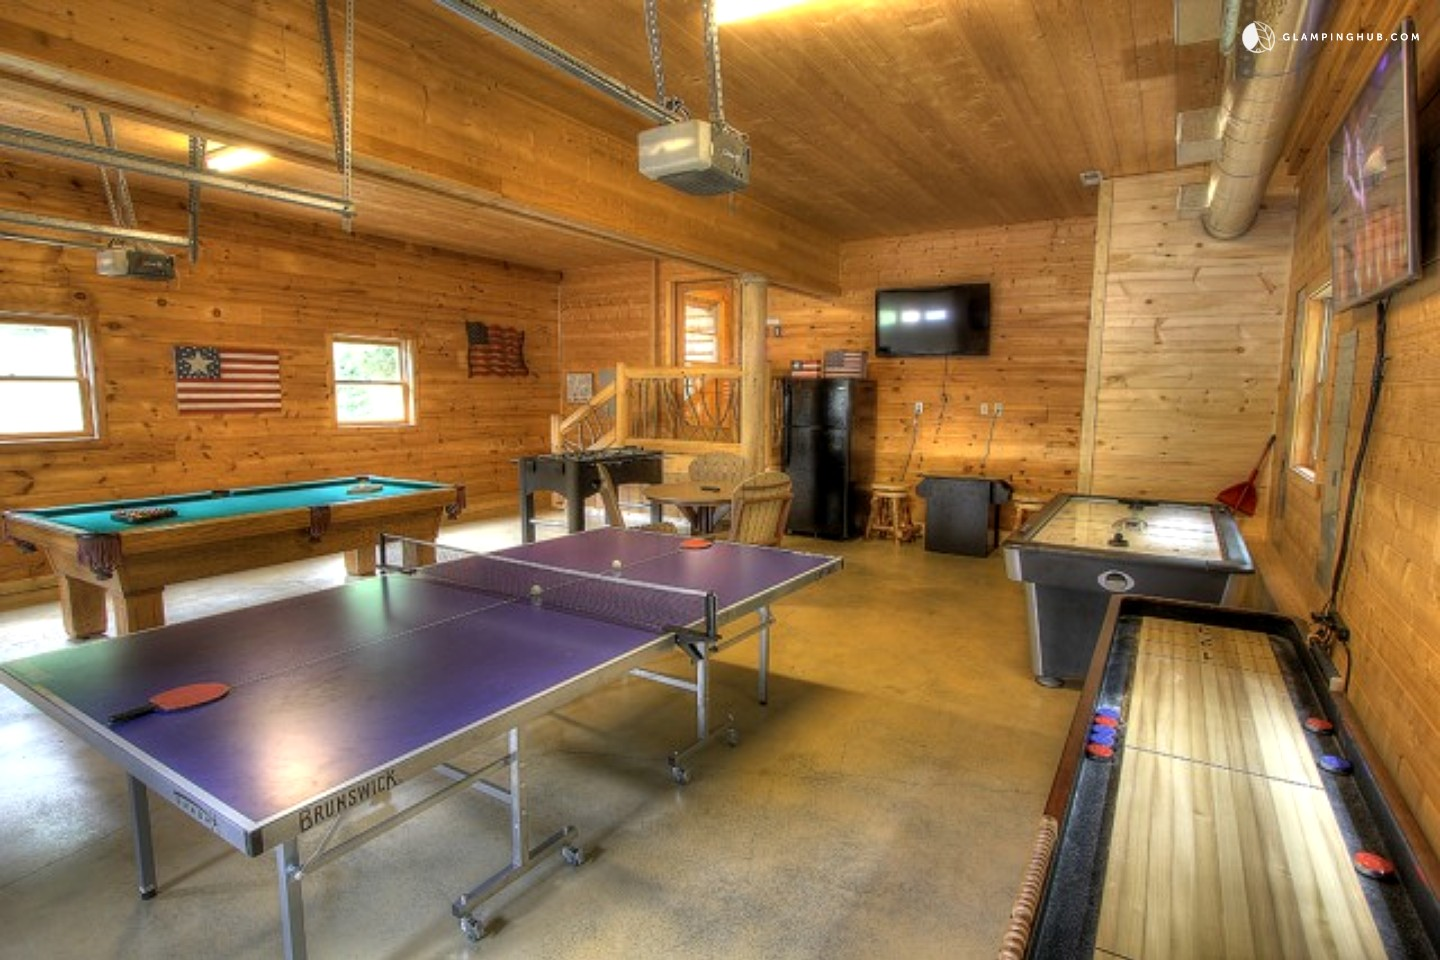 Luxury Cabin Rental Near The Great Smoky Mountains